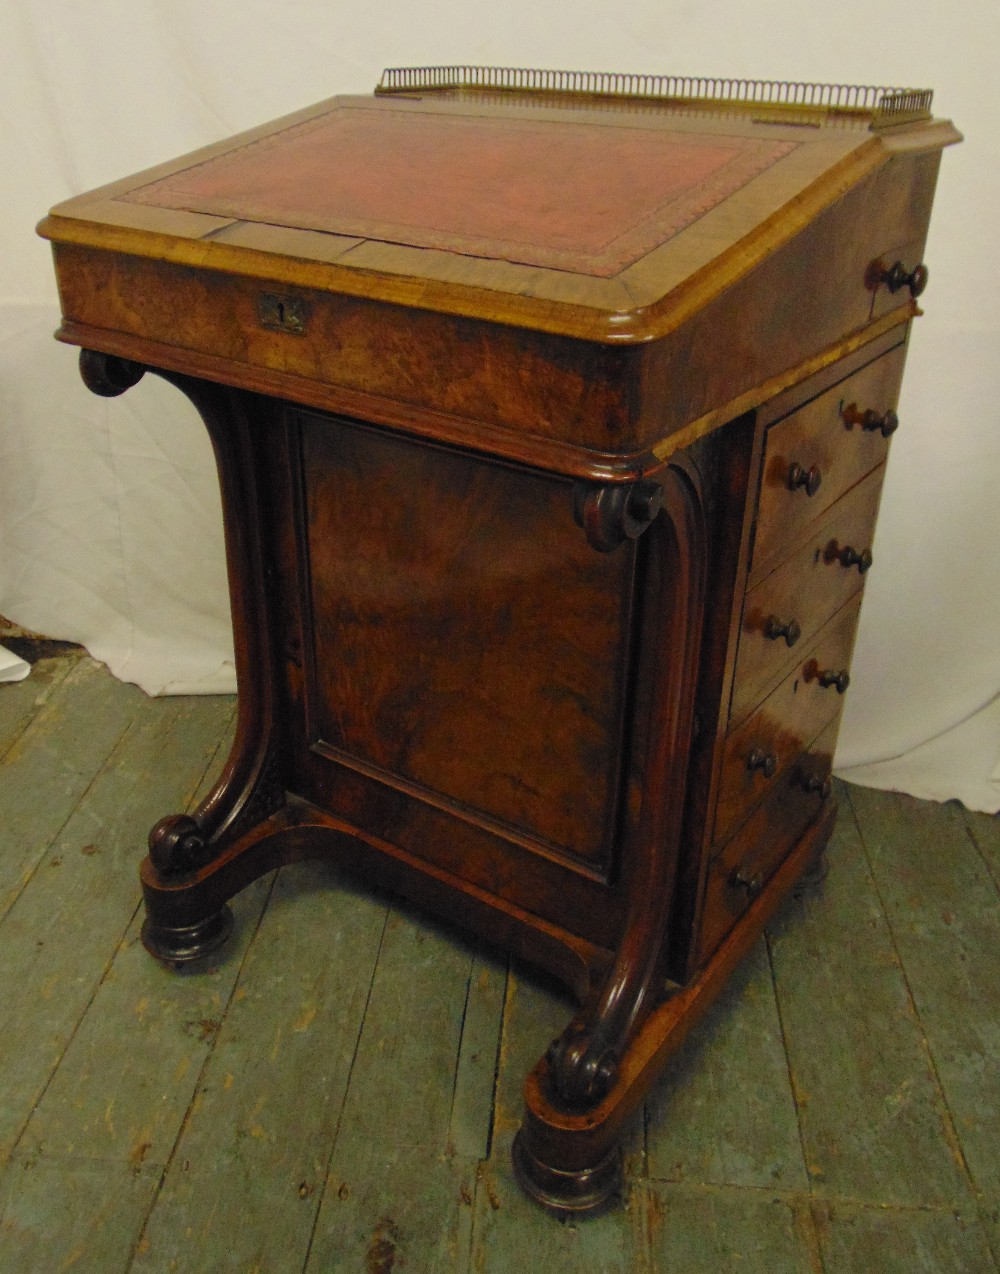 Lot 14 - Victorian mahogany Davenport of customary form with inlaid leather desk, 82 x 53.5 x 52cm